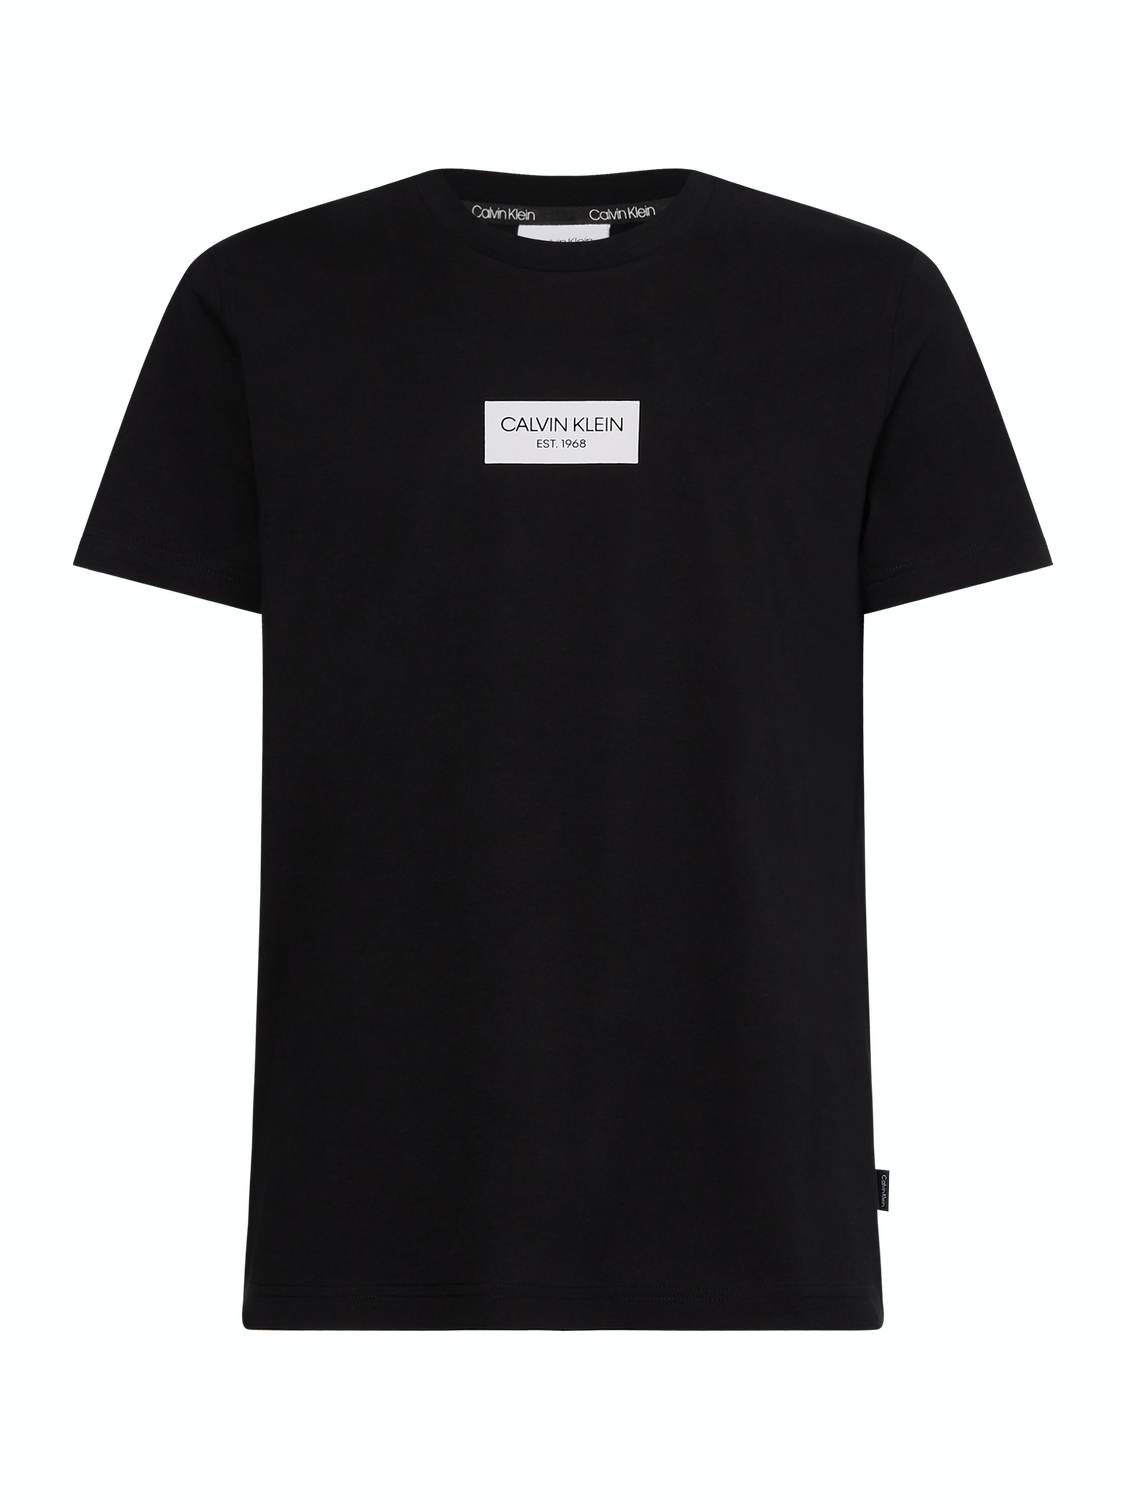 CALVIN KLEIN T-SHIRT BOX LOGO BLACK | GATE 36 Hobro